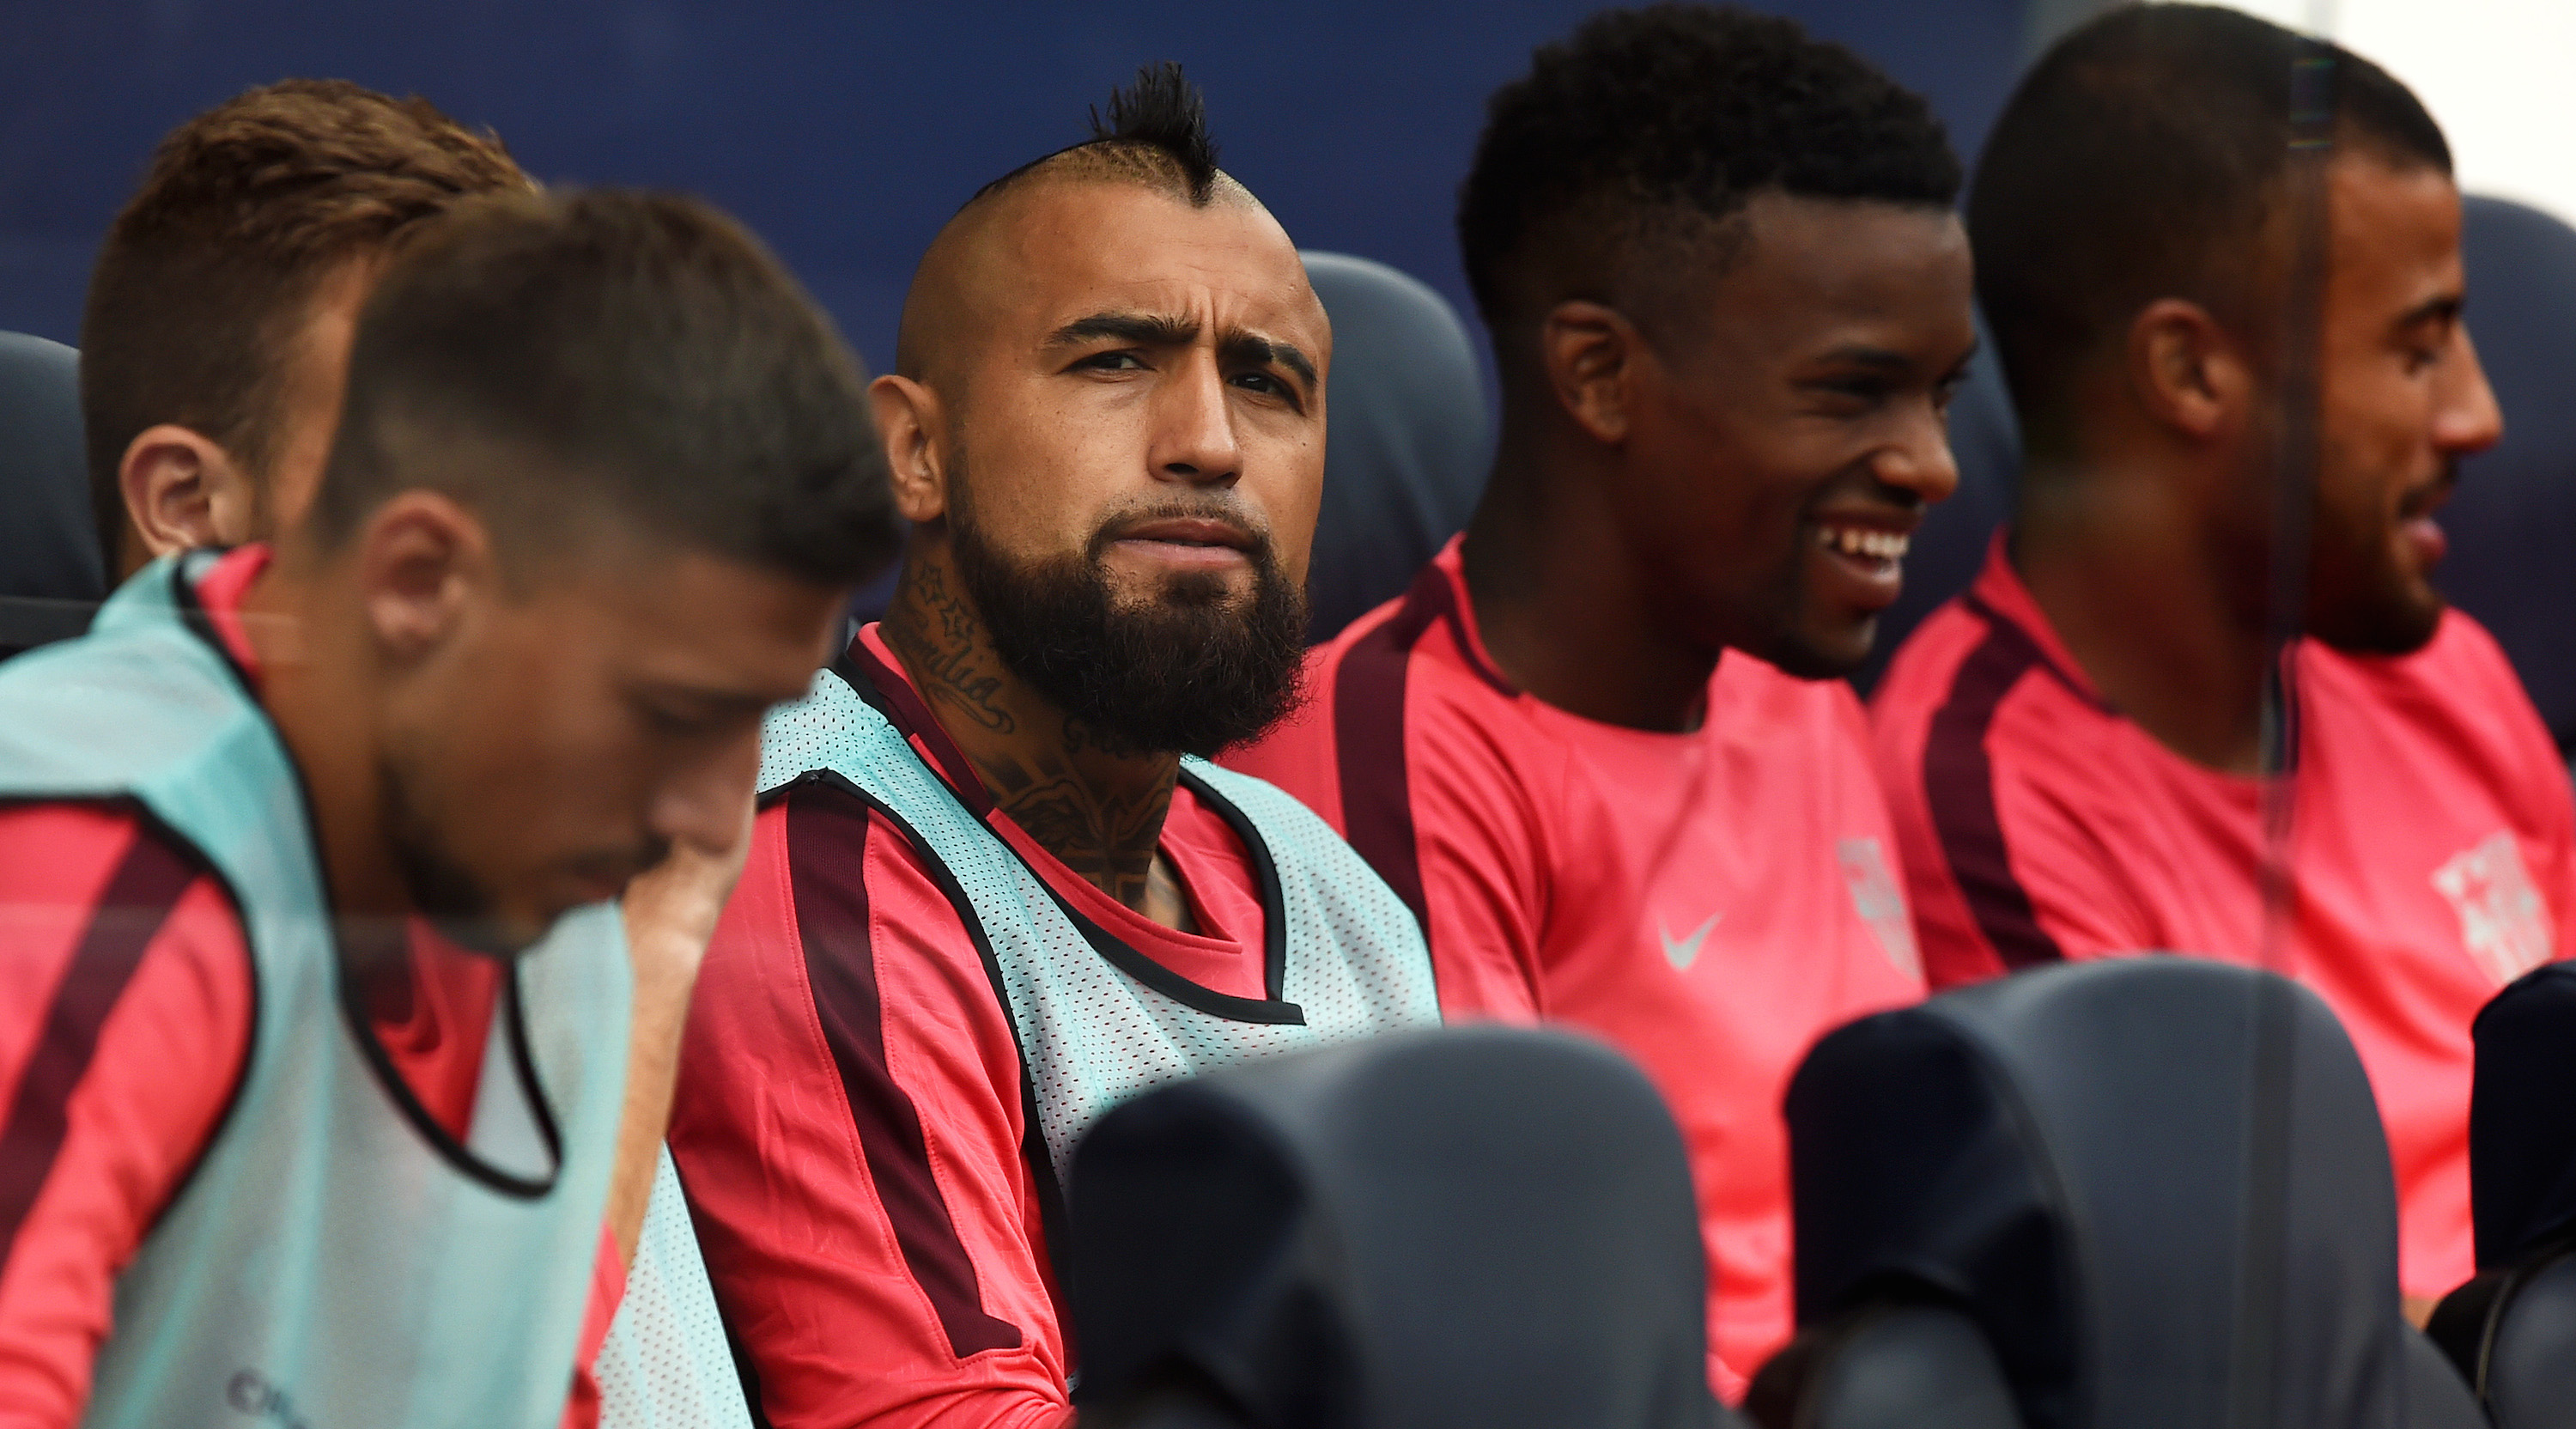 BARCELONA, SPAIN - SEPTEMBER 18: Arturo Vidal of Barcelona looks on from the bench prior to the Group B match of the UEFA Champions League between FC Barcelona and PSV at Camp Nou on September 18, 2018 in Barcelona, Spain. (Photo by Alex Caparros/Getty Images)